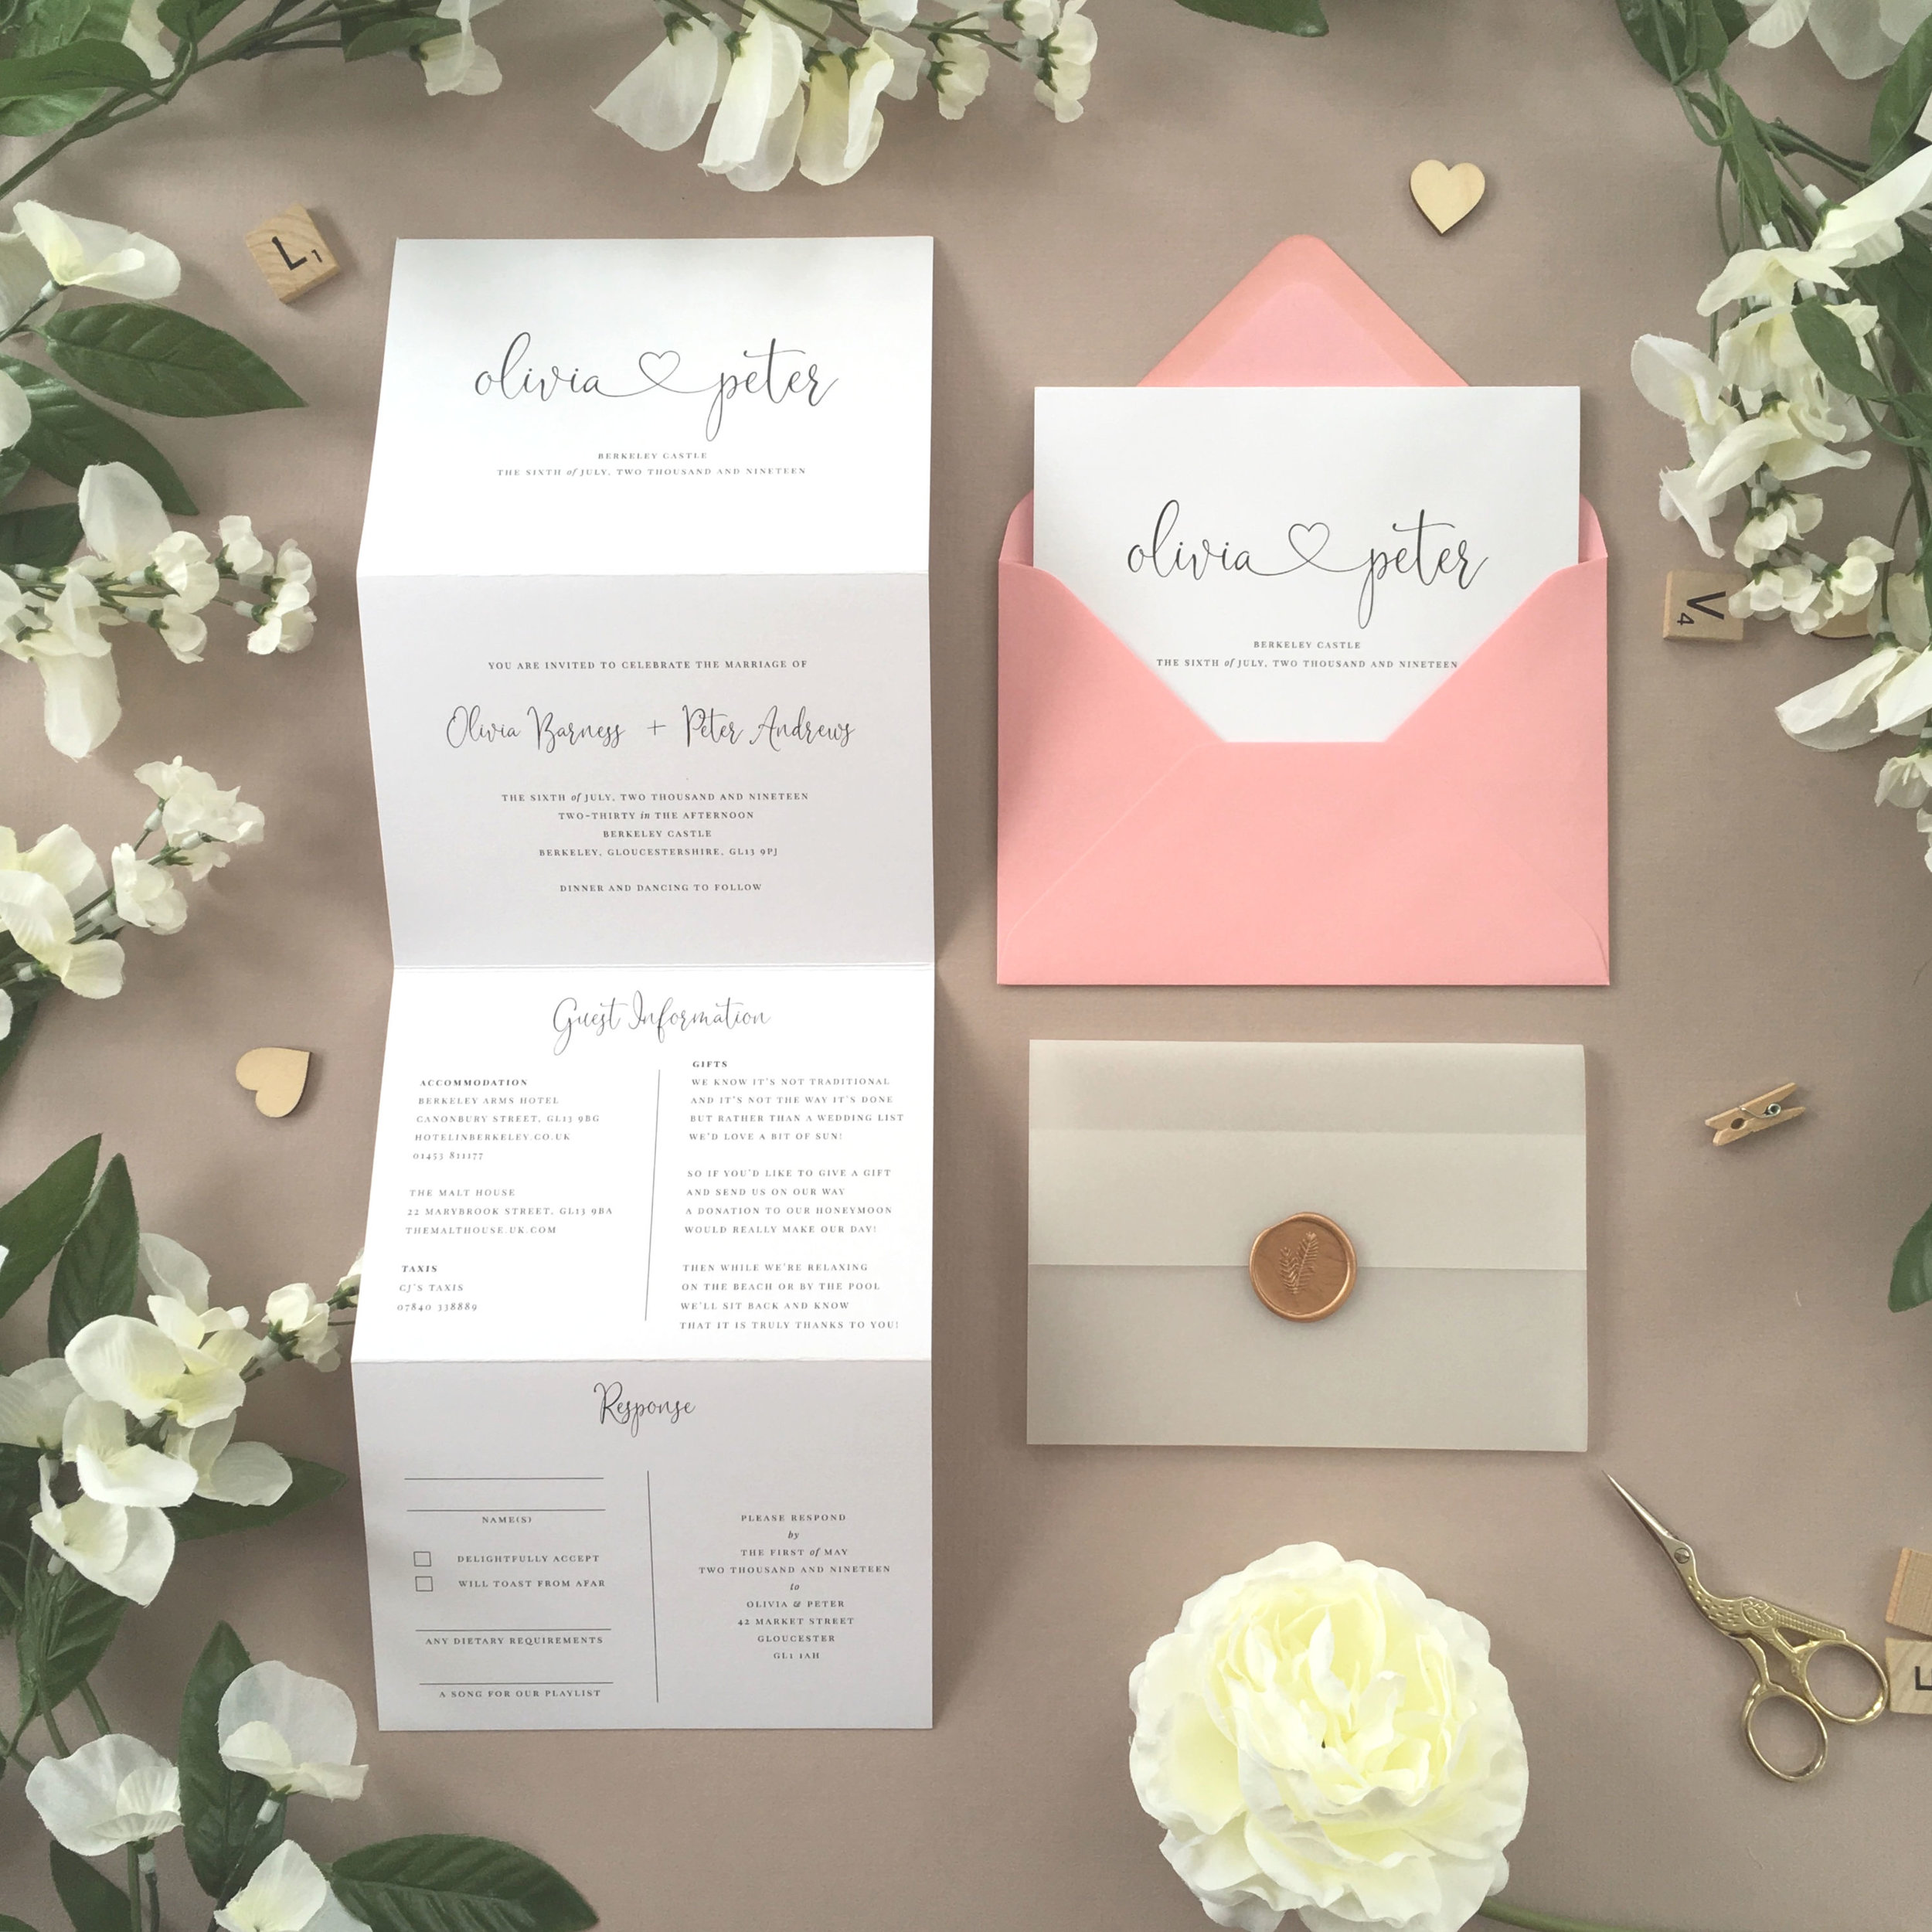 Finchley - Finchley is one of our most popular collections, using simple typography and a lovely presentation of the couple's names, joined with a heart.Our concertina invitations are a great all-in-one solution, with a detachable RSVP at the bottom of the invitation - all guests need to do is fill in their details, put a stamp in the corner and post!Concertina invitations can be provided on an as-is basis, or can be provided bound with a vellum jacket and timeless wax seal, or tied with ribbon or twine for a lovely hand-finished approach.- Concertina Invitation - from £1.95- Ribbon or Twine - £0.40- Vellum Jacket - £0.40- Wax Seal - £0.85 (Custom engraving also available)White envelope provided as standard with coloured upgrade available.